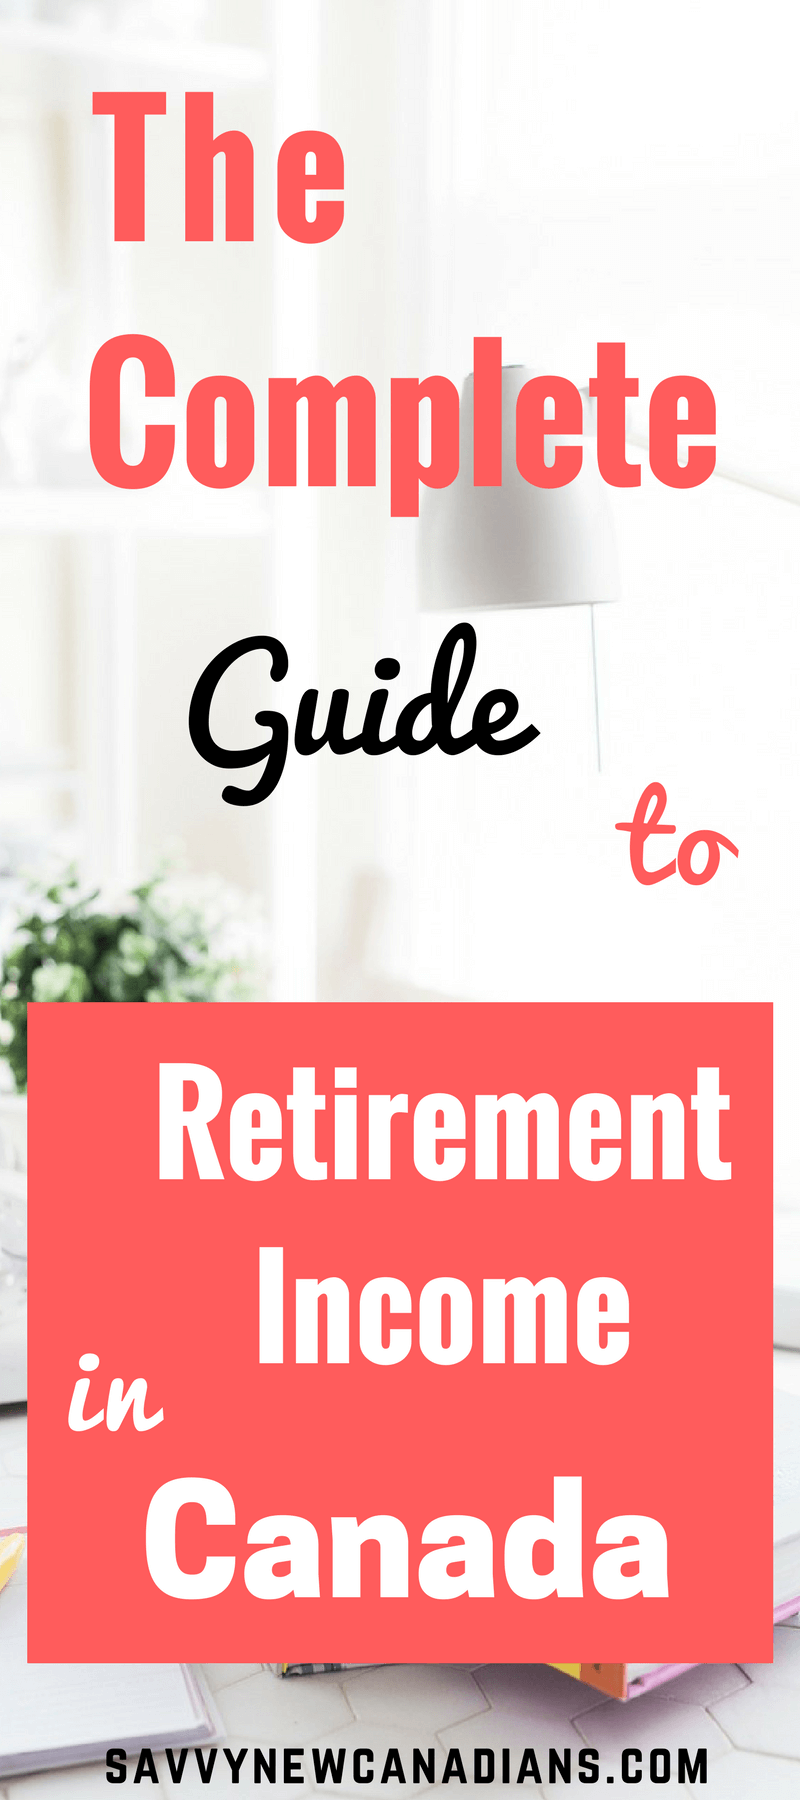 This is everything you need to know about retirement income and retirement planning in Canada. Check out these guide for how much money you will need in retirement, how much you can expect in pensions and benefits, how to invest and the retirement accounts available, and more. #financialplanning #retirement #retirementplanning #saving #investing #RRSP #TFSA #OAS #CPP #GIS #personalfinance